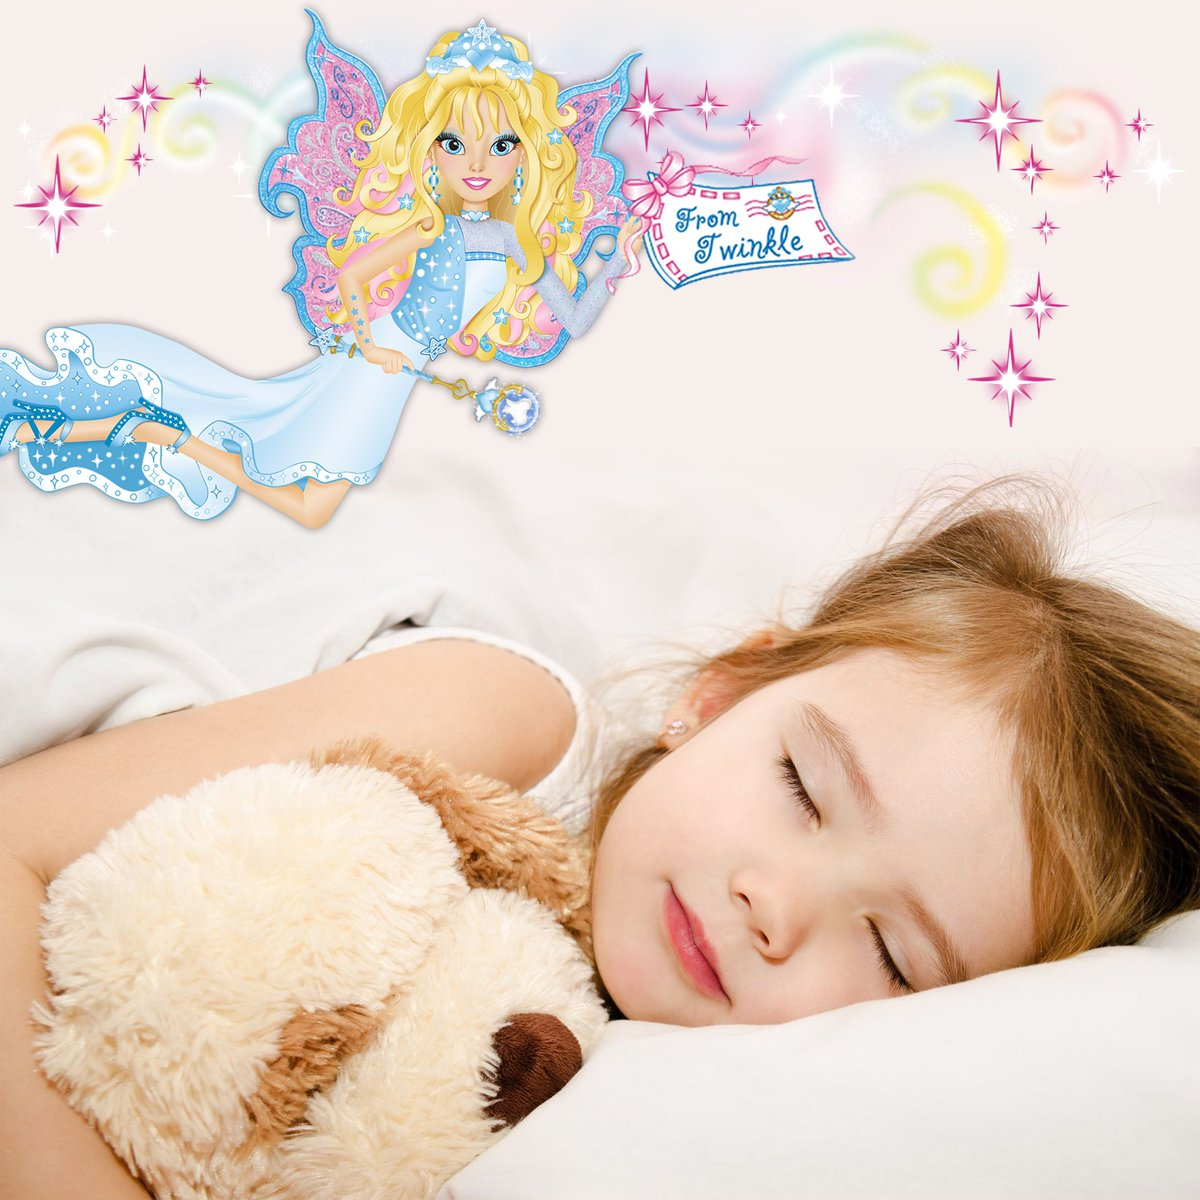 real tooth fairies yourtoothfairy twitter. Black Bedroom Furniture Sets. Home Design Ideas